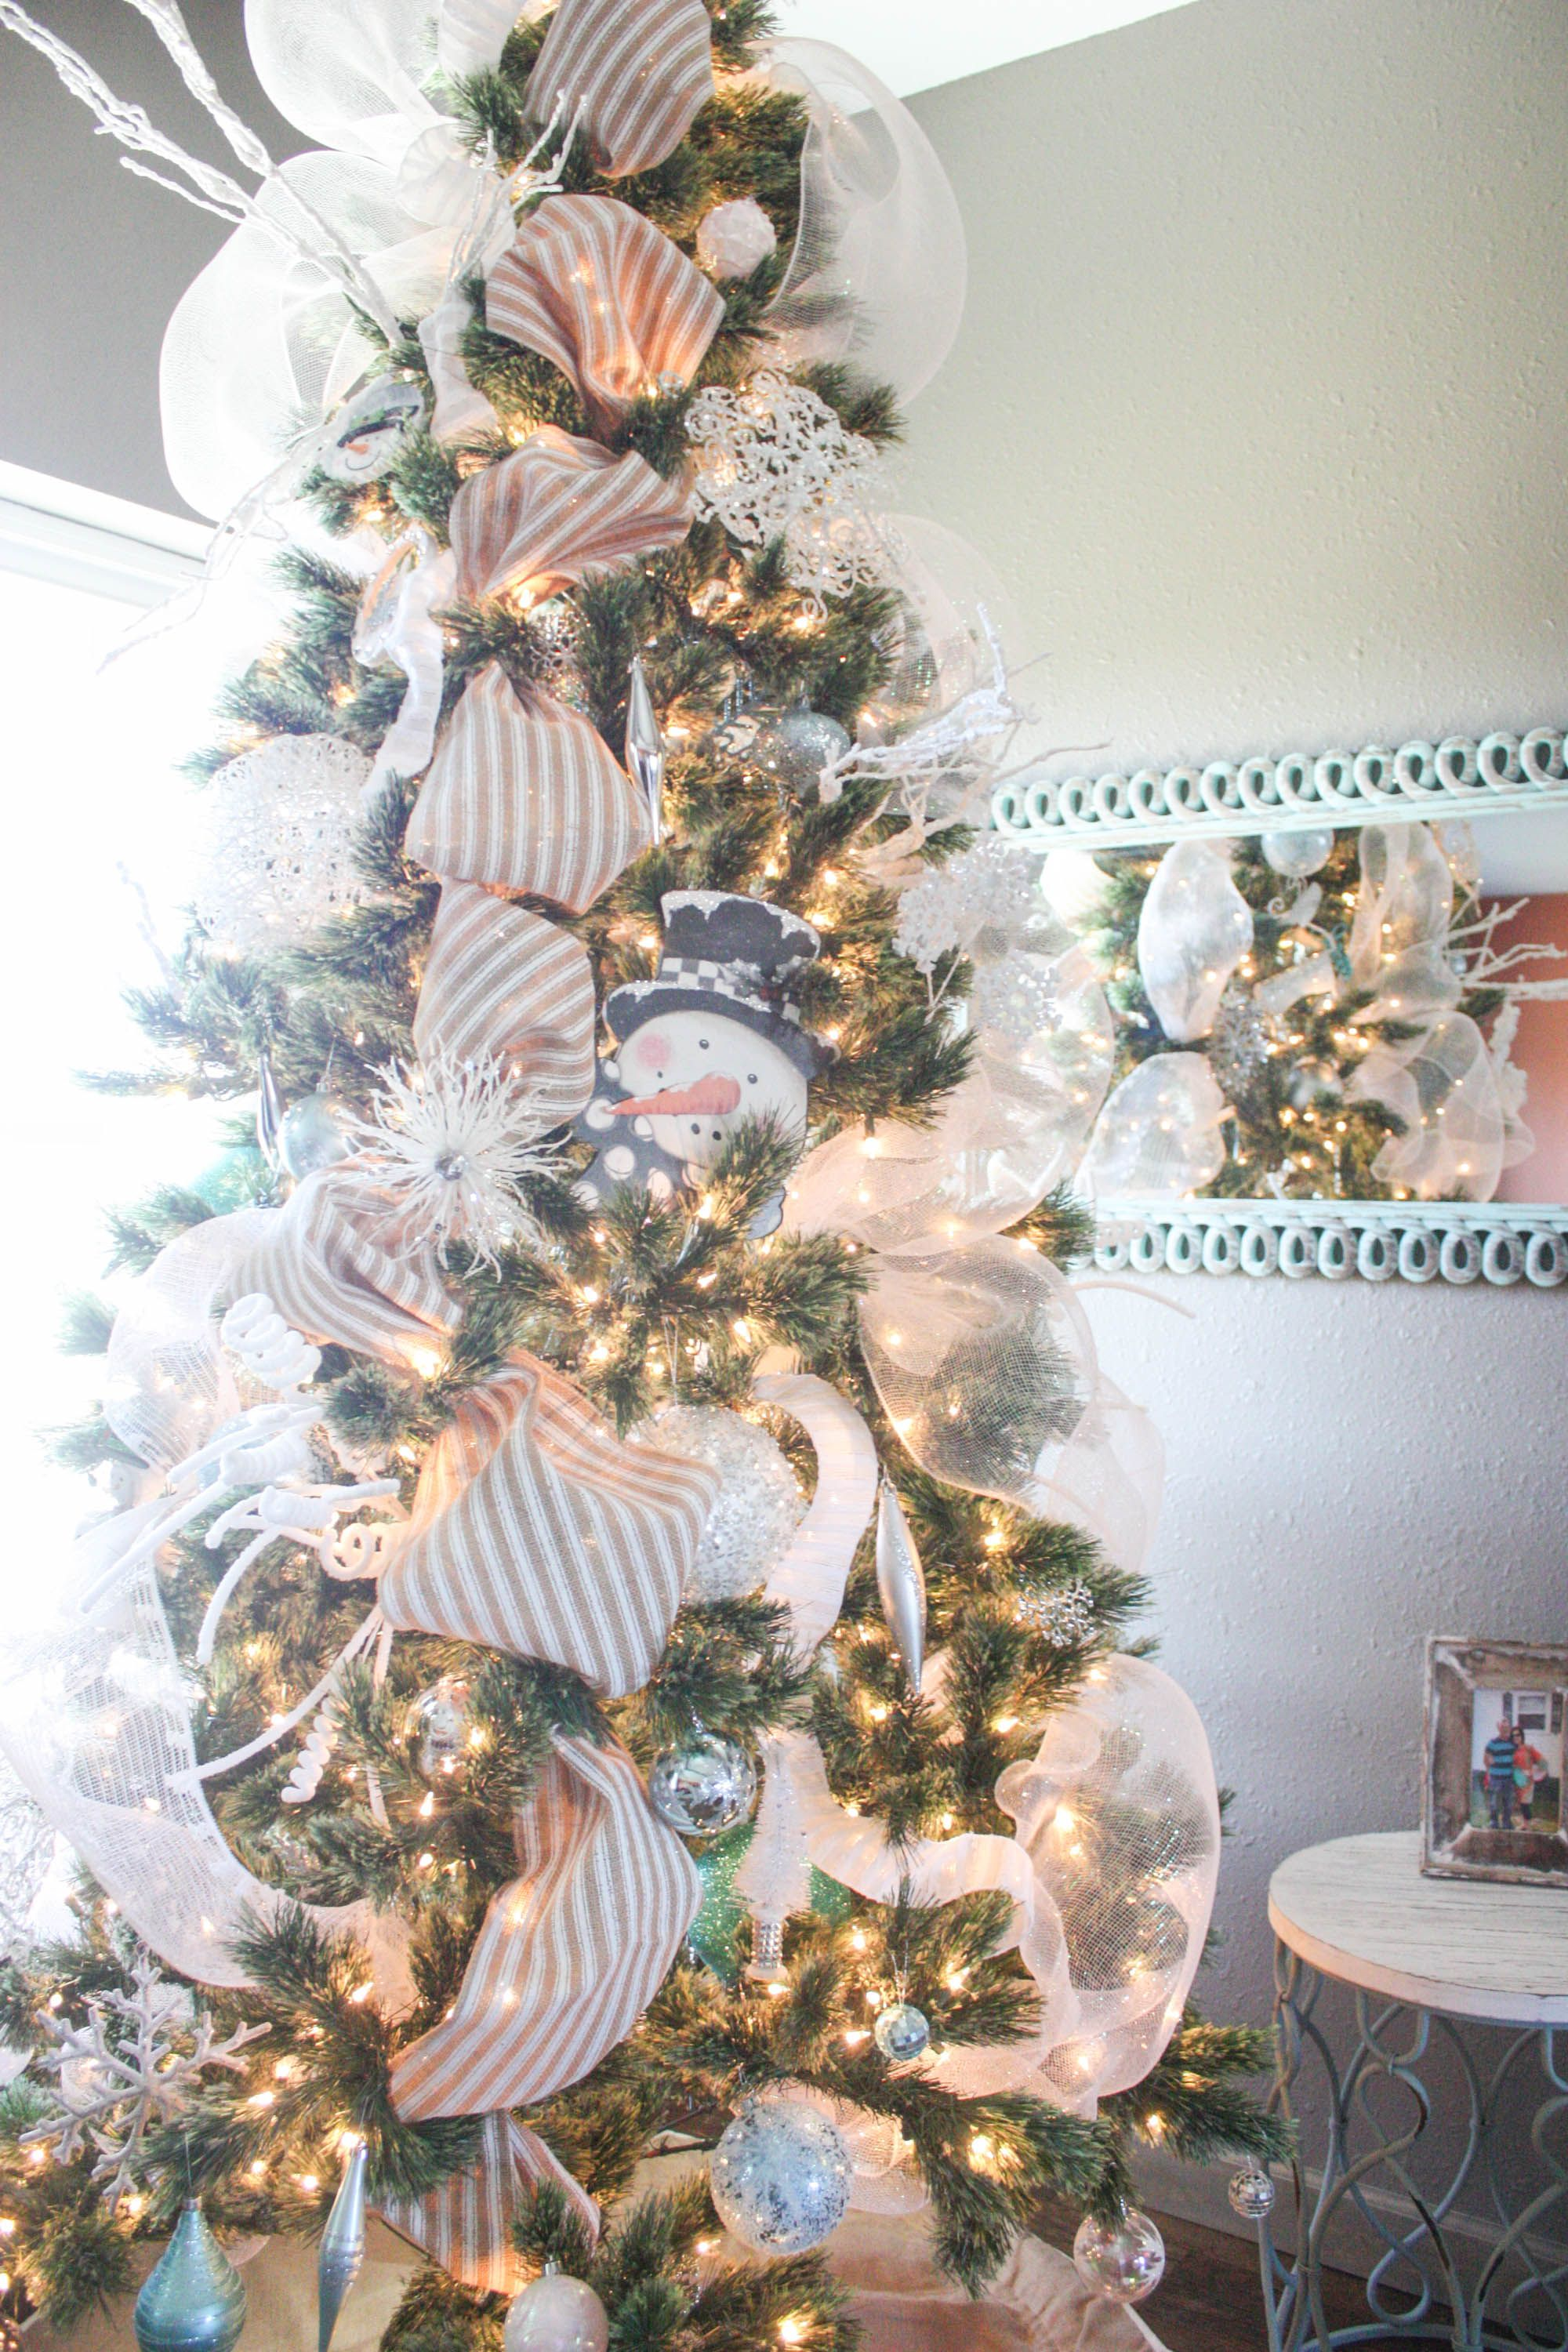 get step by step instructions on how to decorate a christmas tree from start to finish